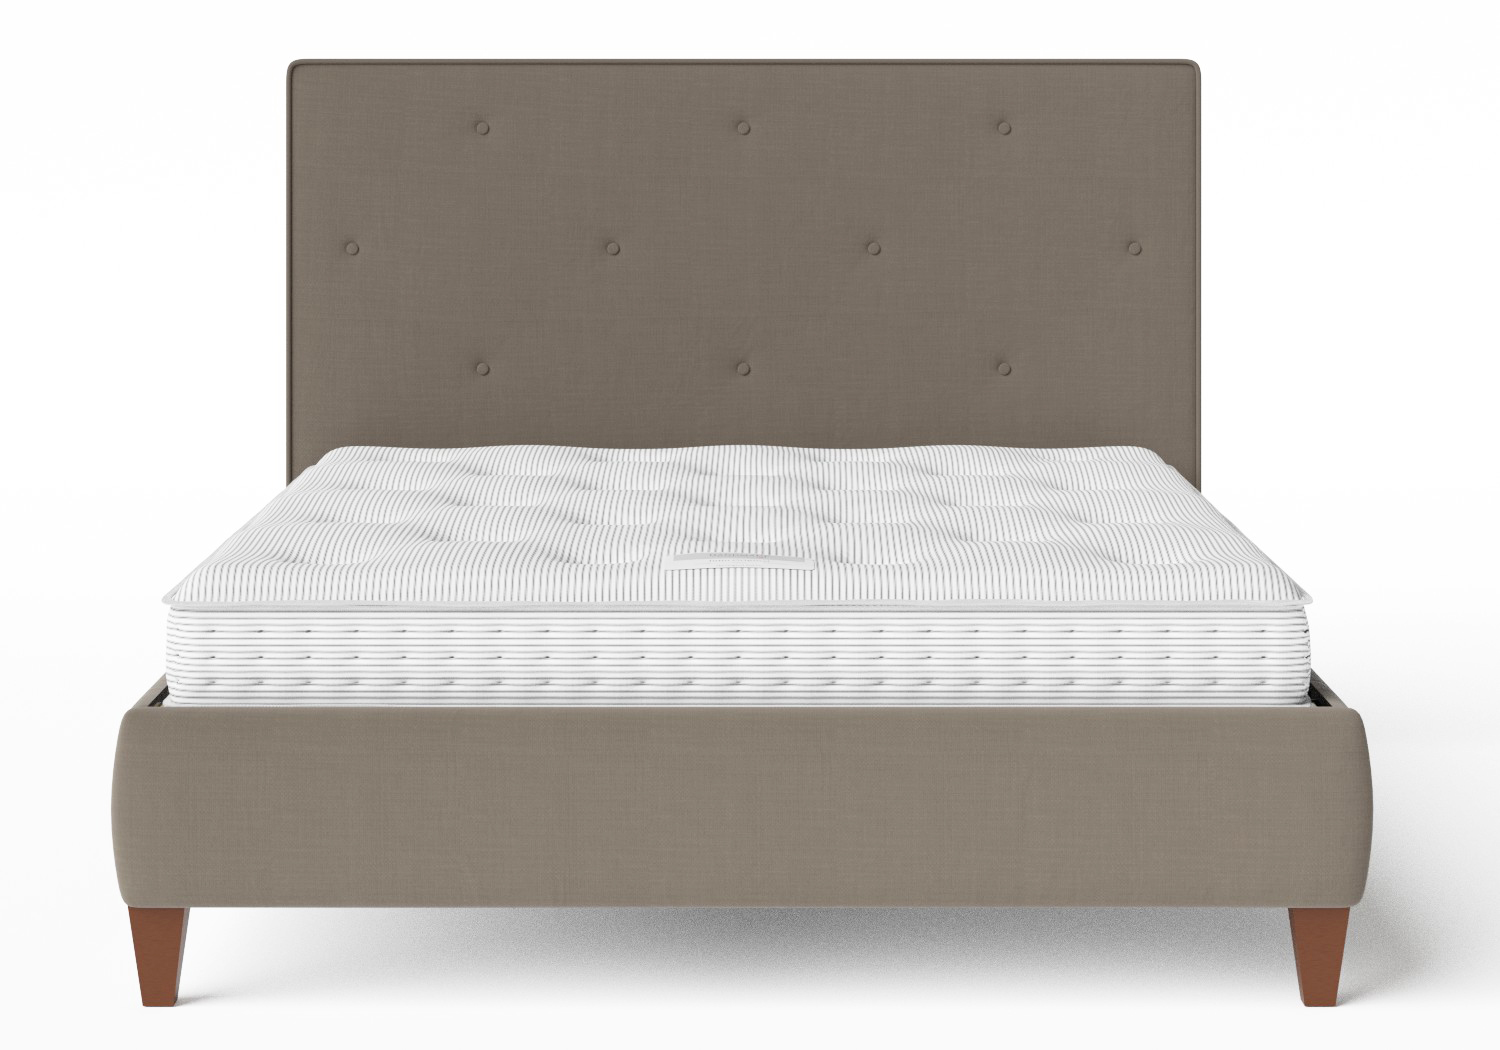 Yushan Upholstered Bed in Grey fabric with buttoning shown with Juno 1 mattress